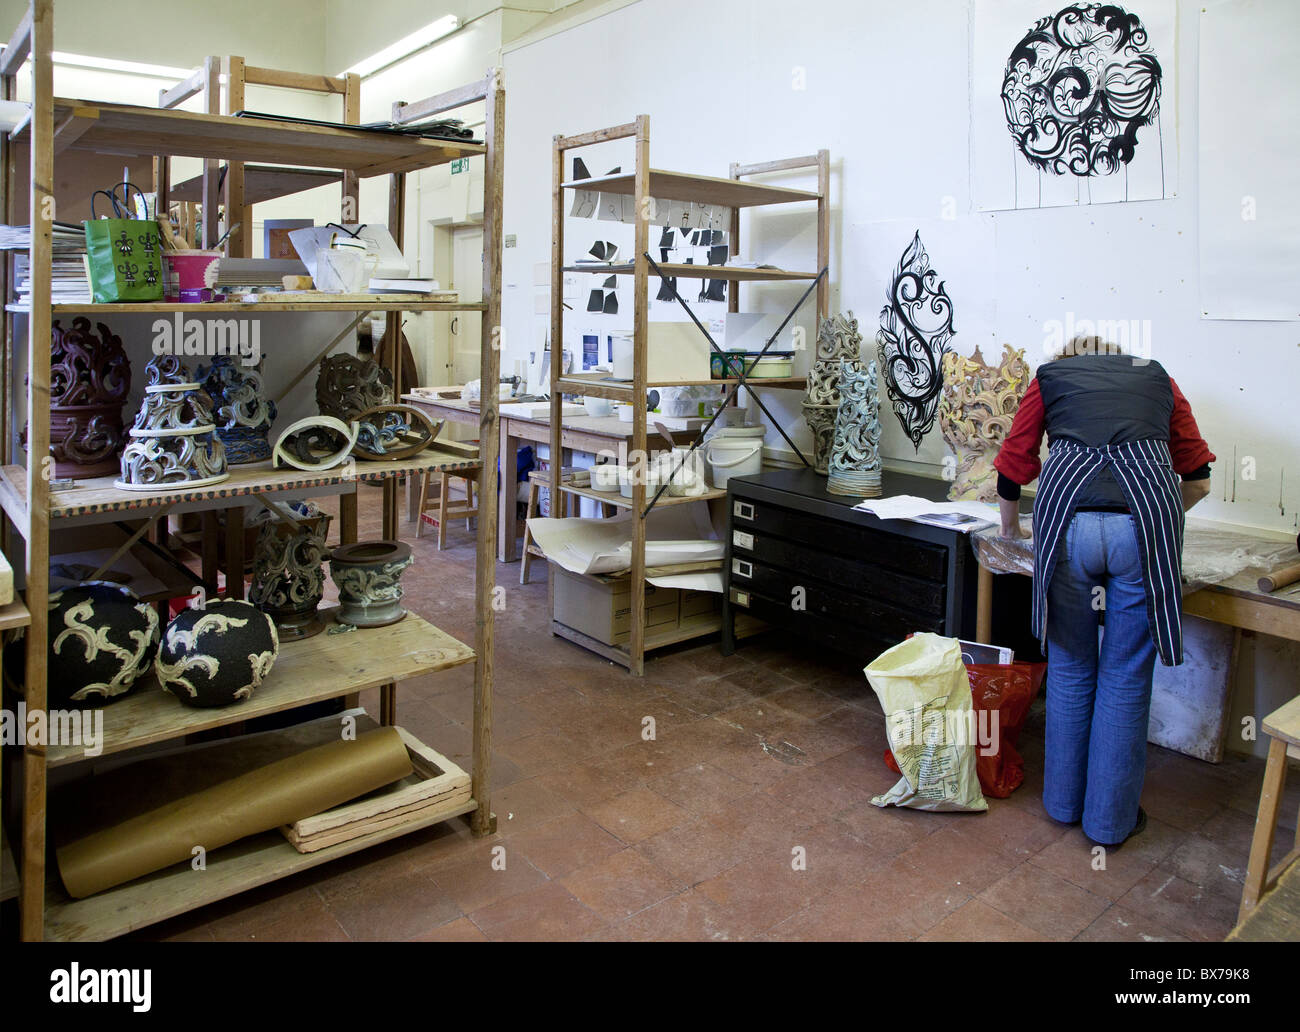 Ceramic Studio At Corsham Court In Wiltshire Home To Bath School Of Art And Design Academy Part Spa University